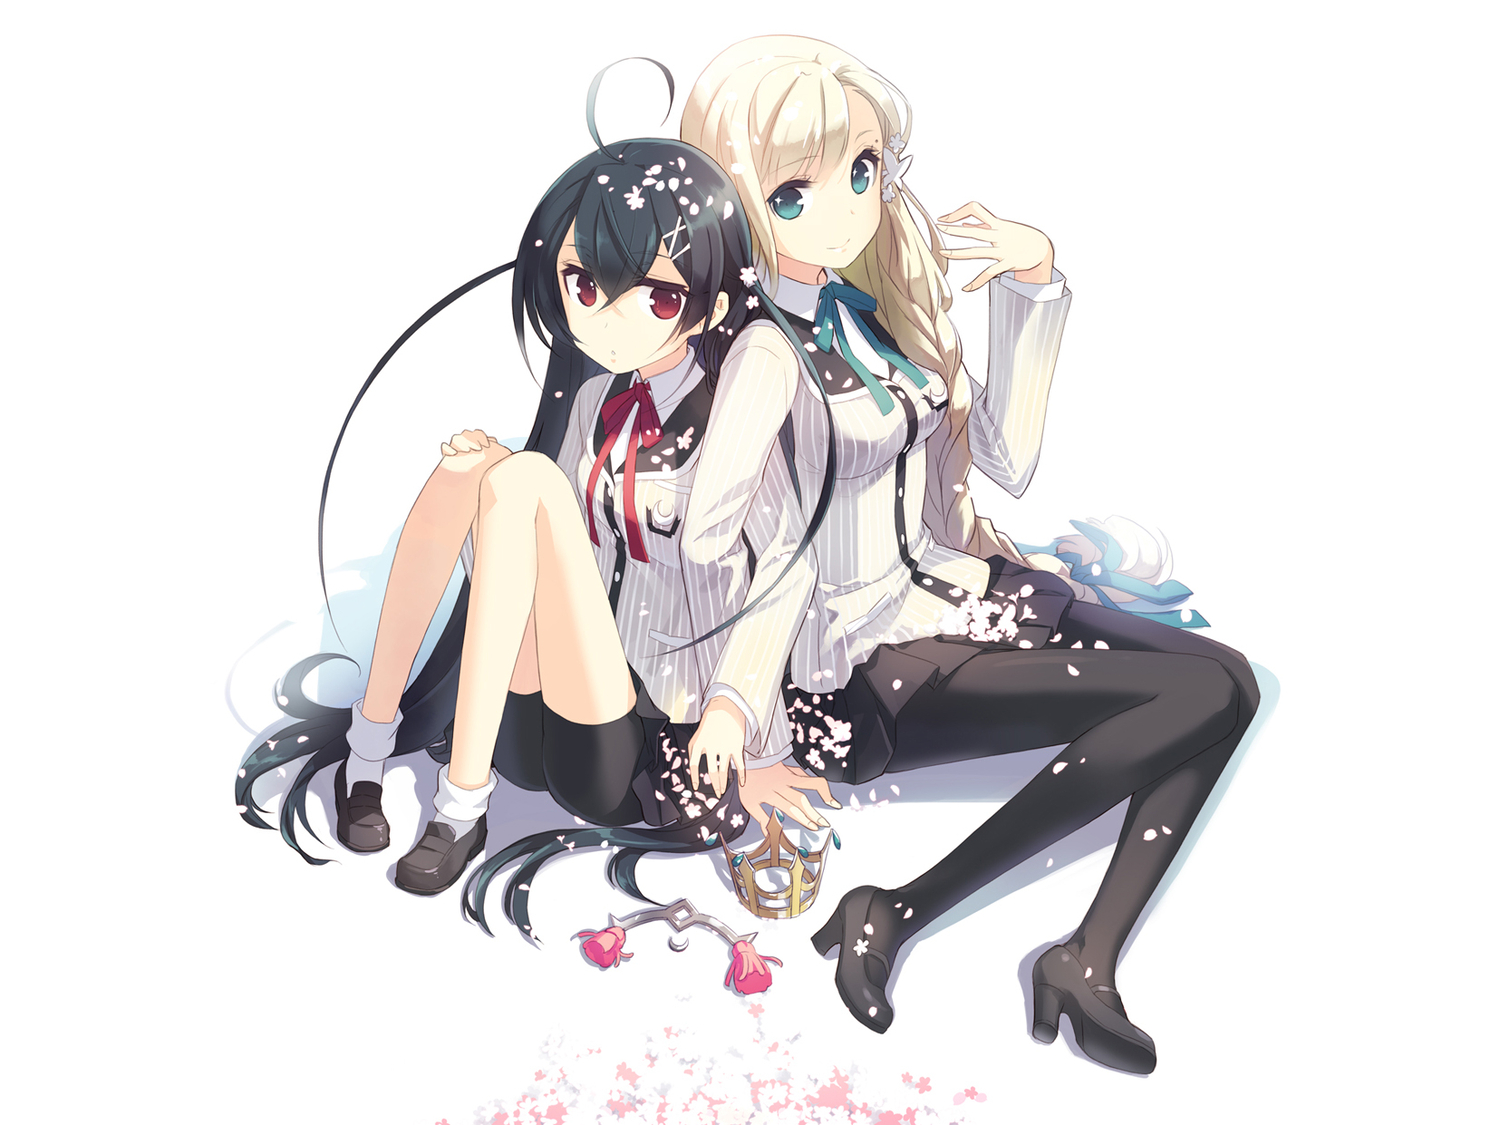 2girls black_hair blonde_hair green_eyes h2so4 long_hair pantyhose petals red_eyes seifuku white